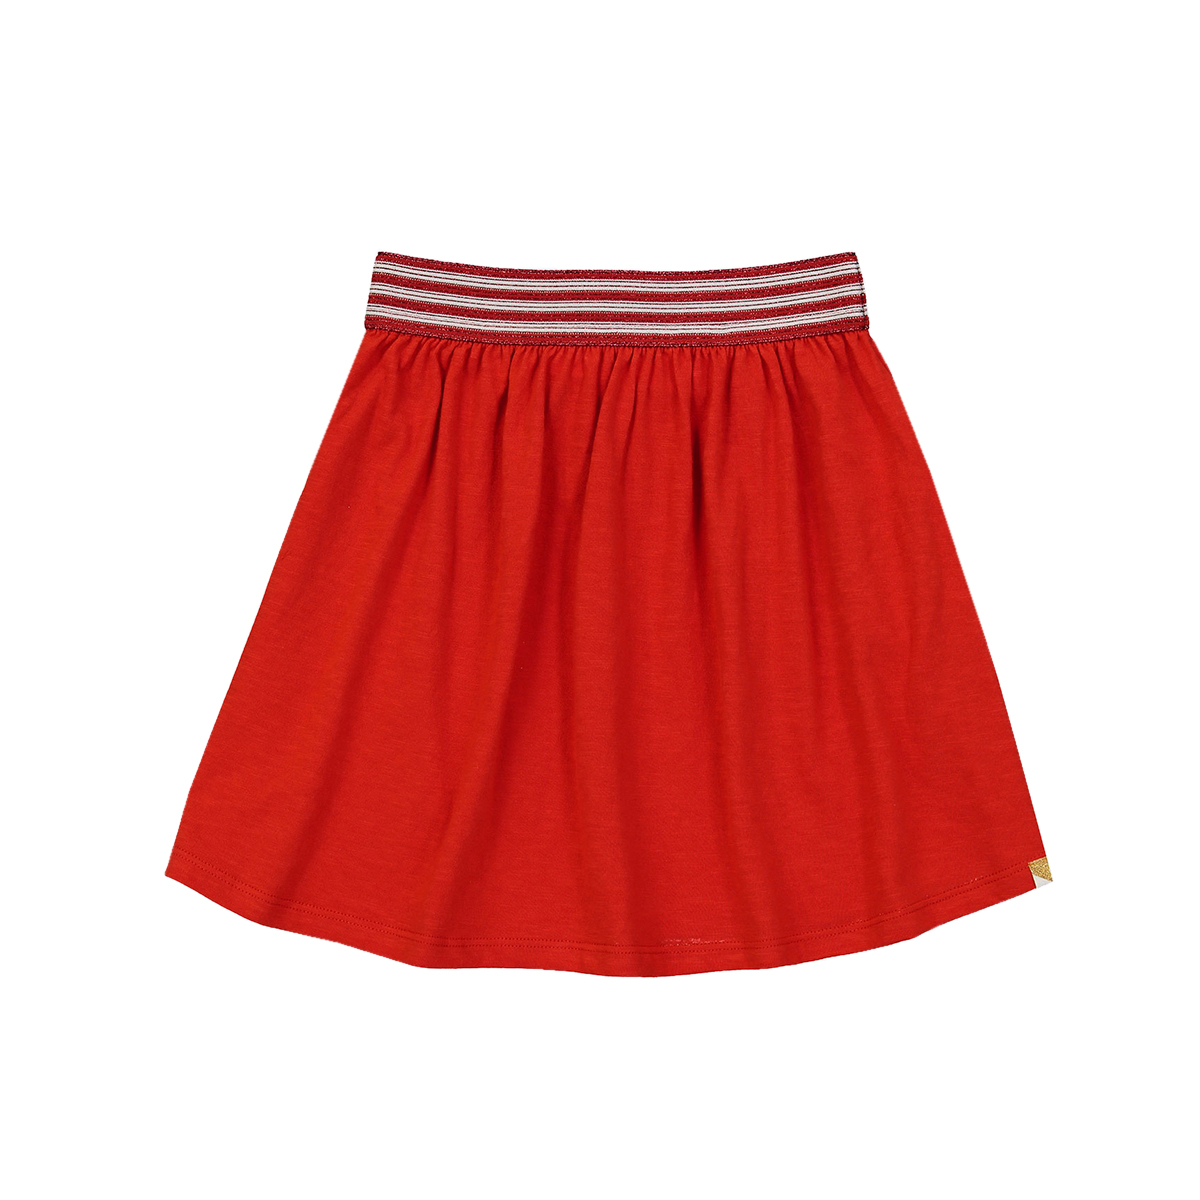 Blune Groupie Skirt in Red